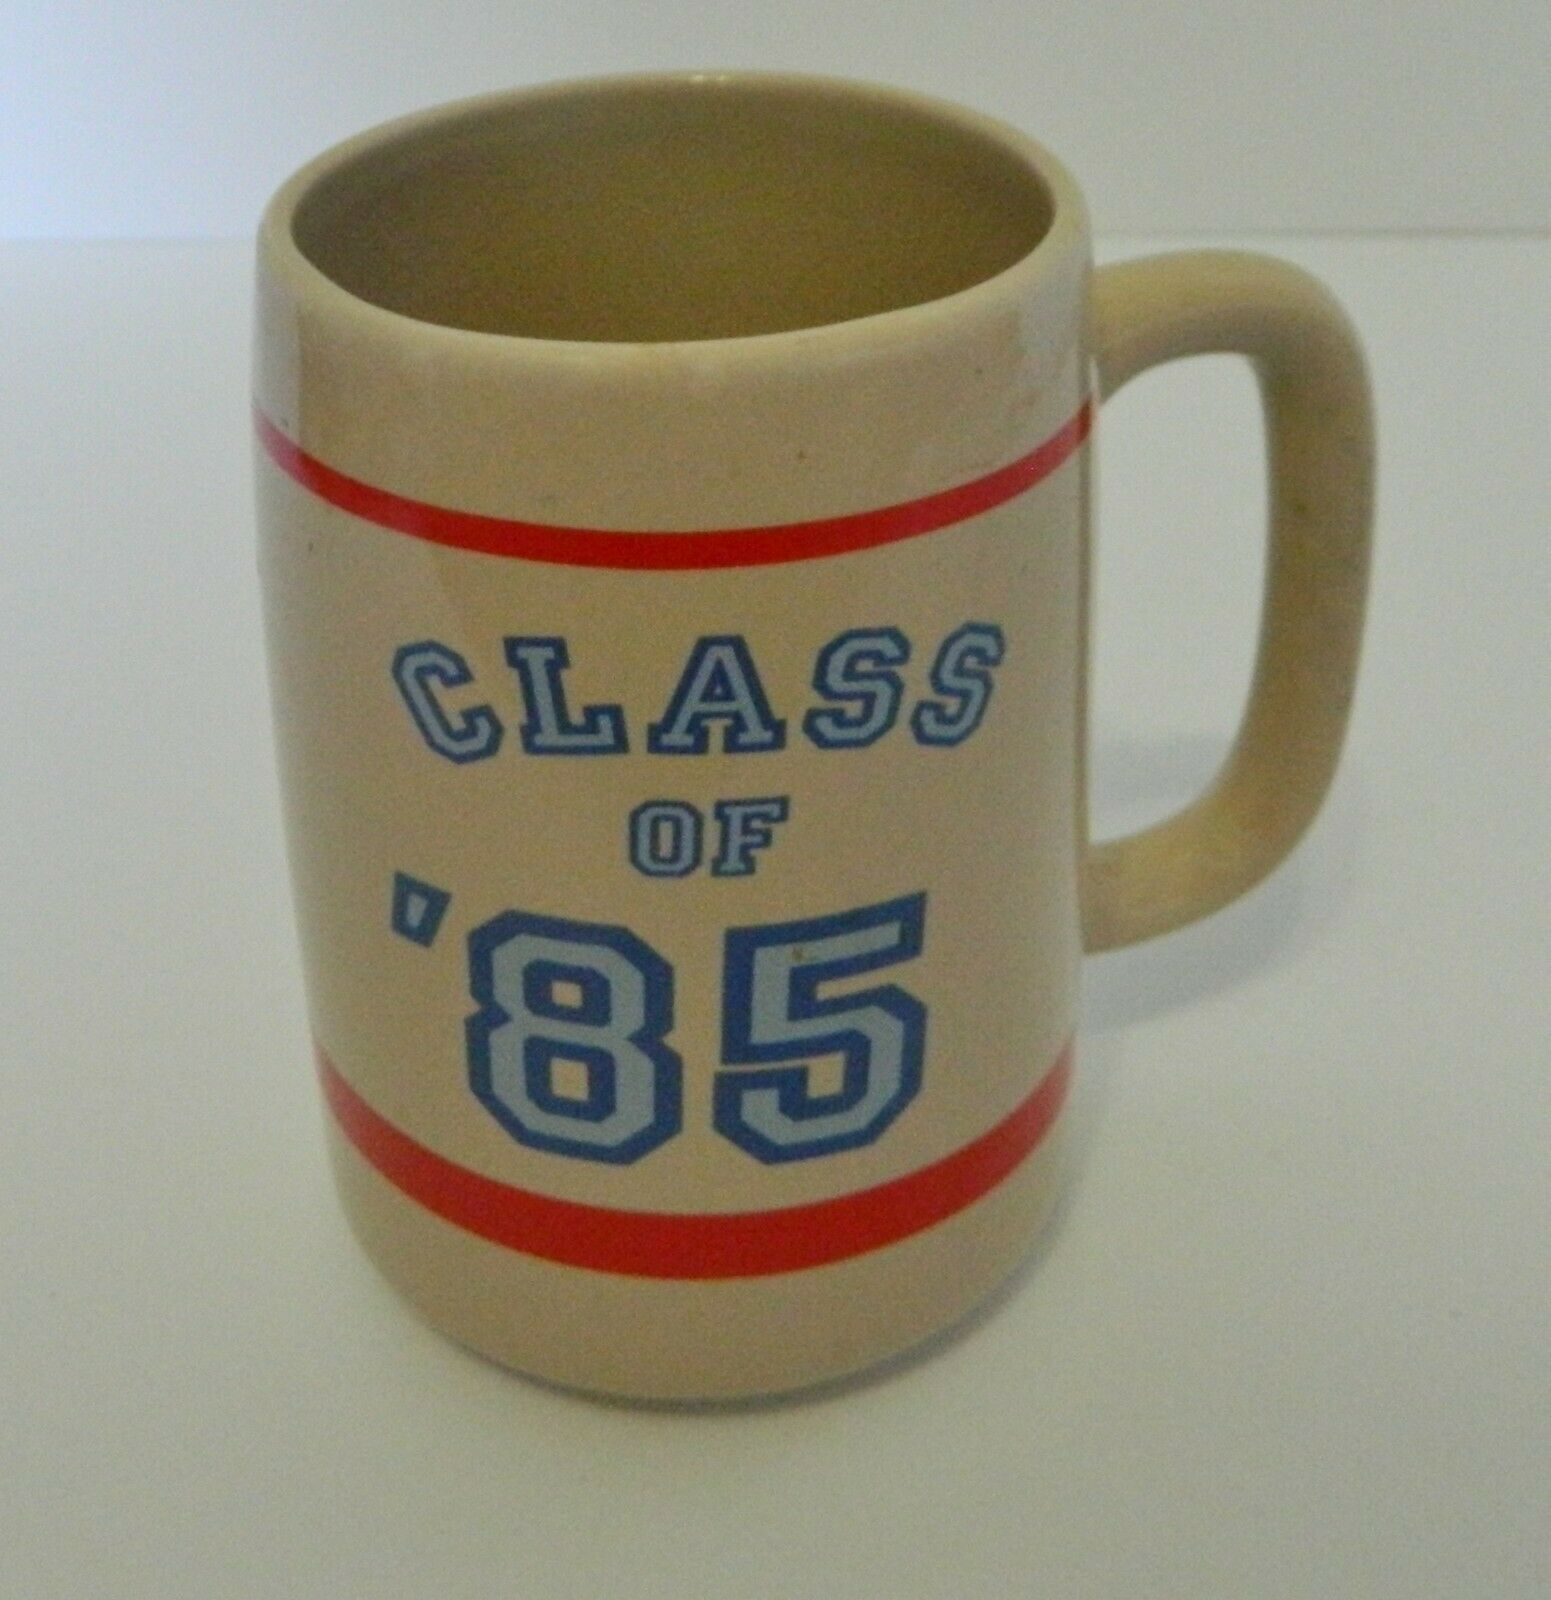 Primary image for Russ Berrie & CO Class Of 85 Collectible Ceramic Coffee Mug Cup Korea 8108